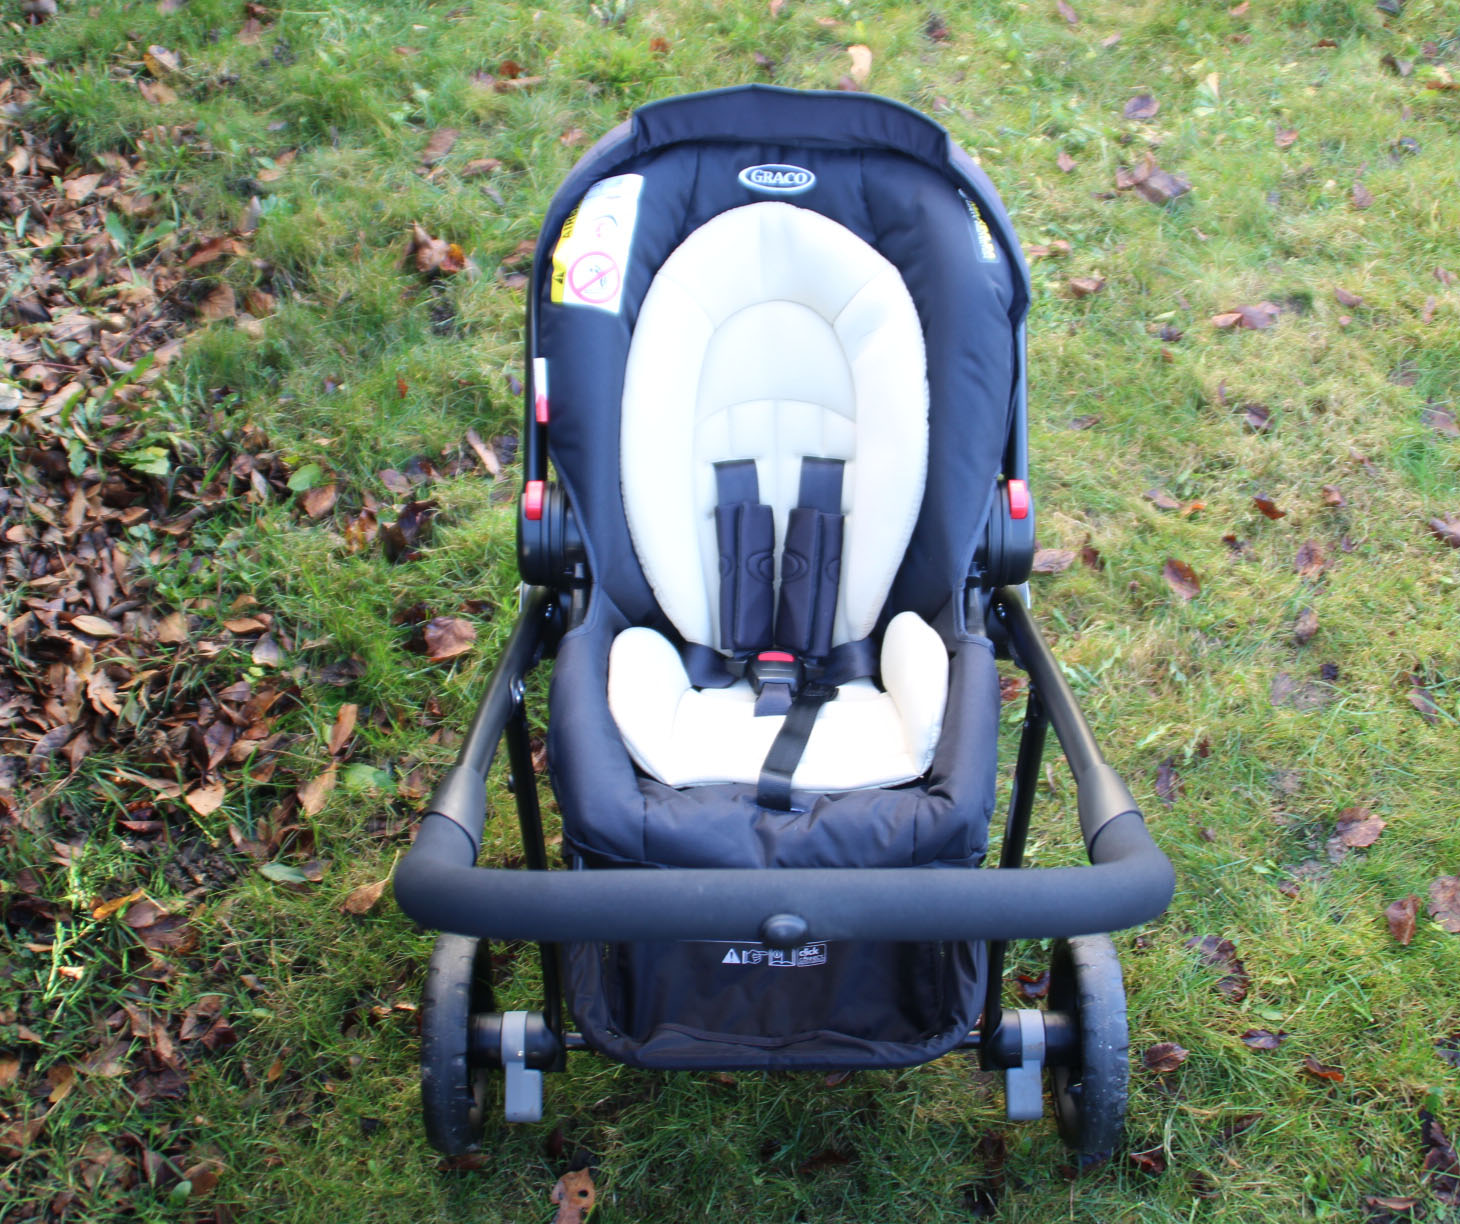 Graco, Graco review, Graco Modes 3 Lite, #GenerationGraco